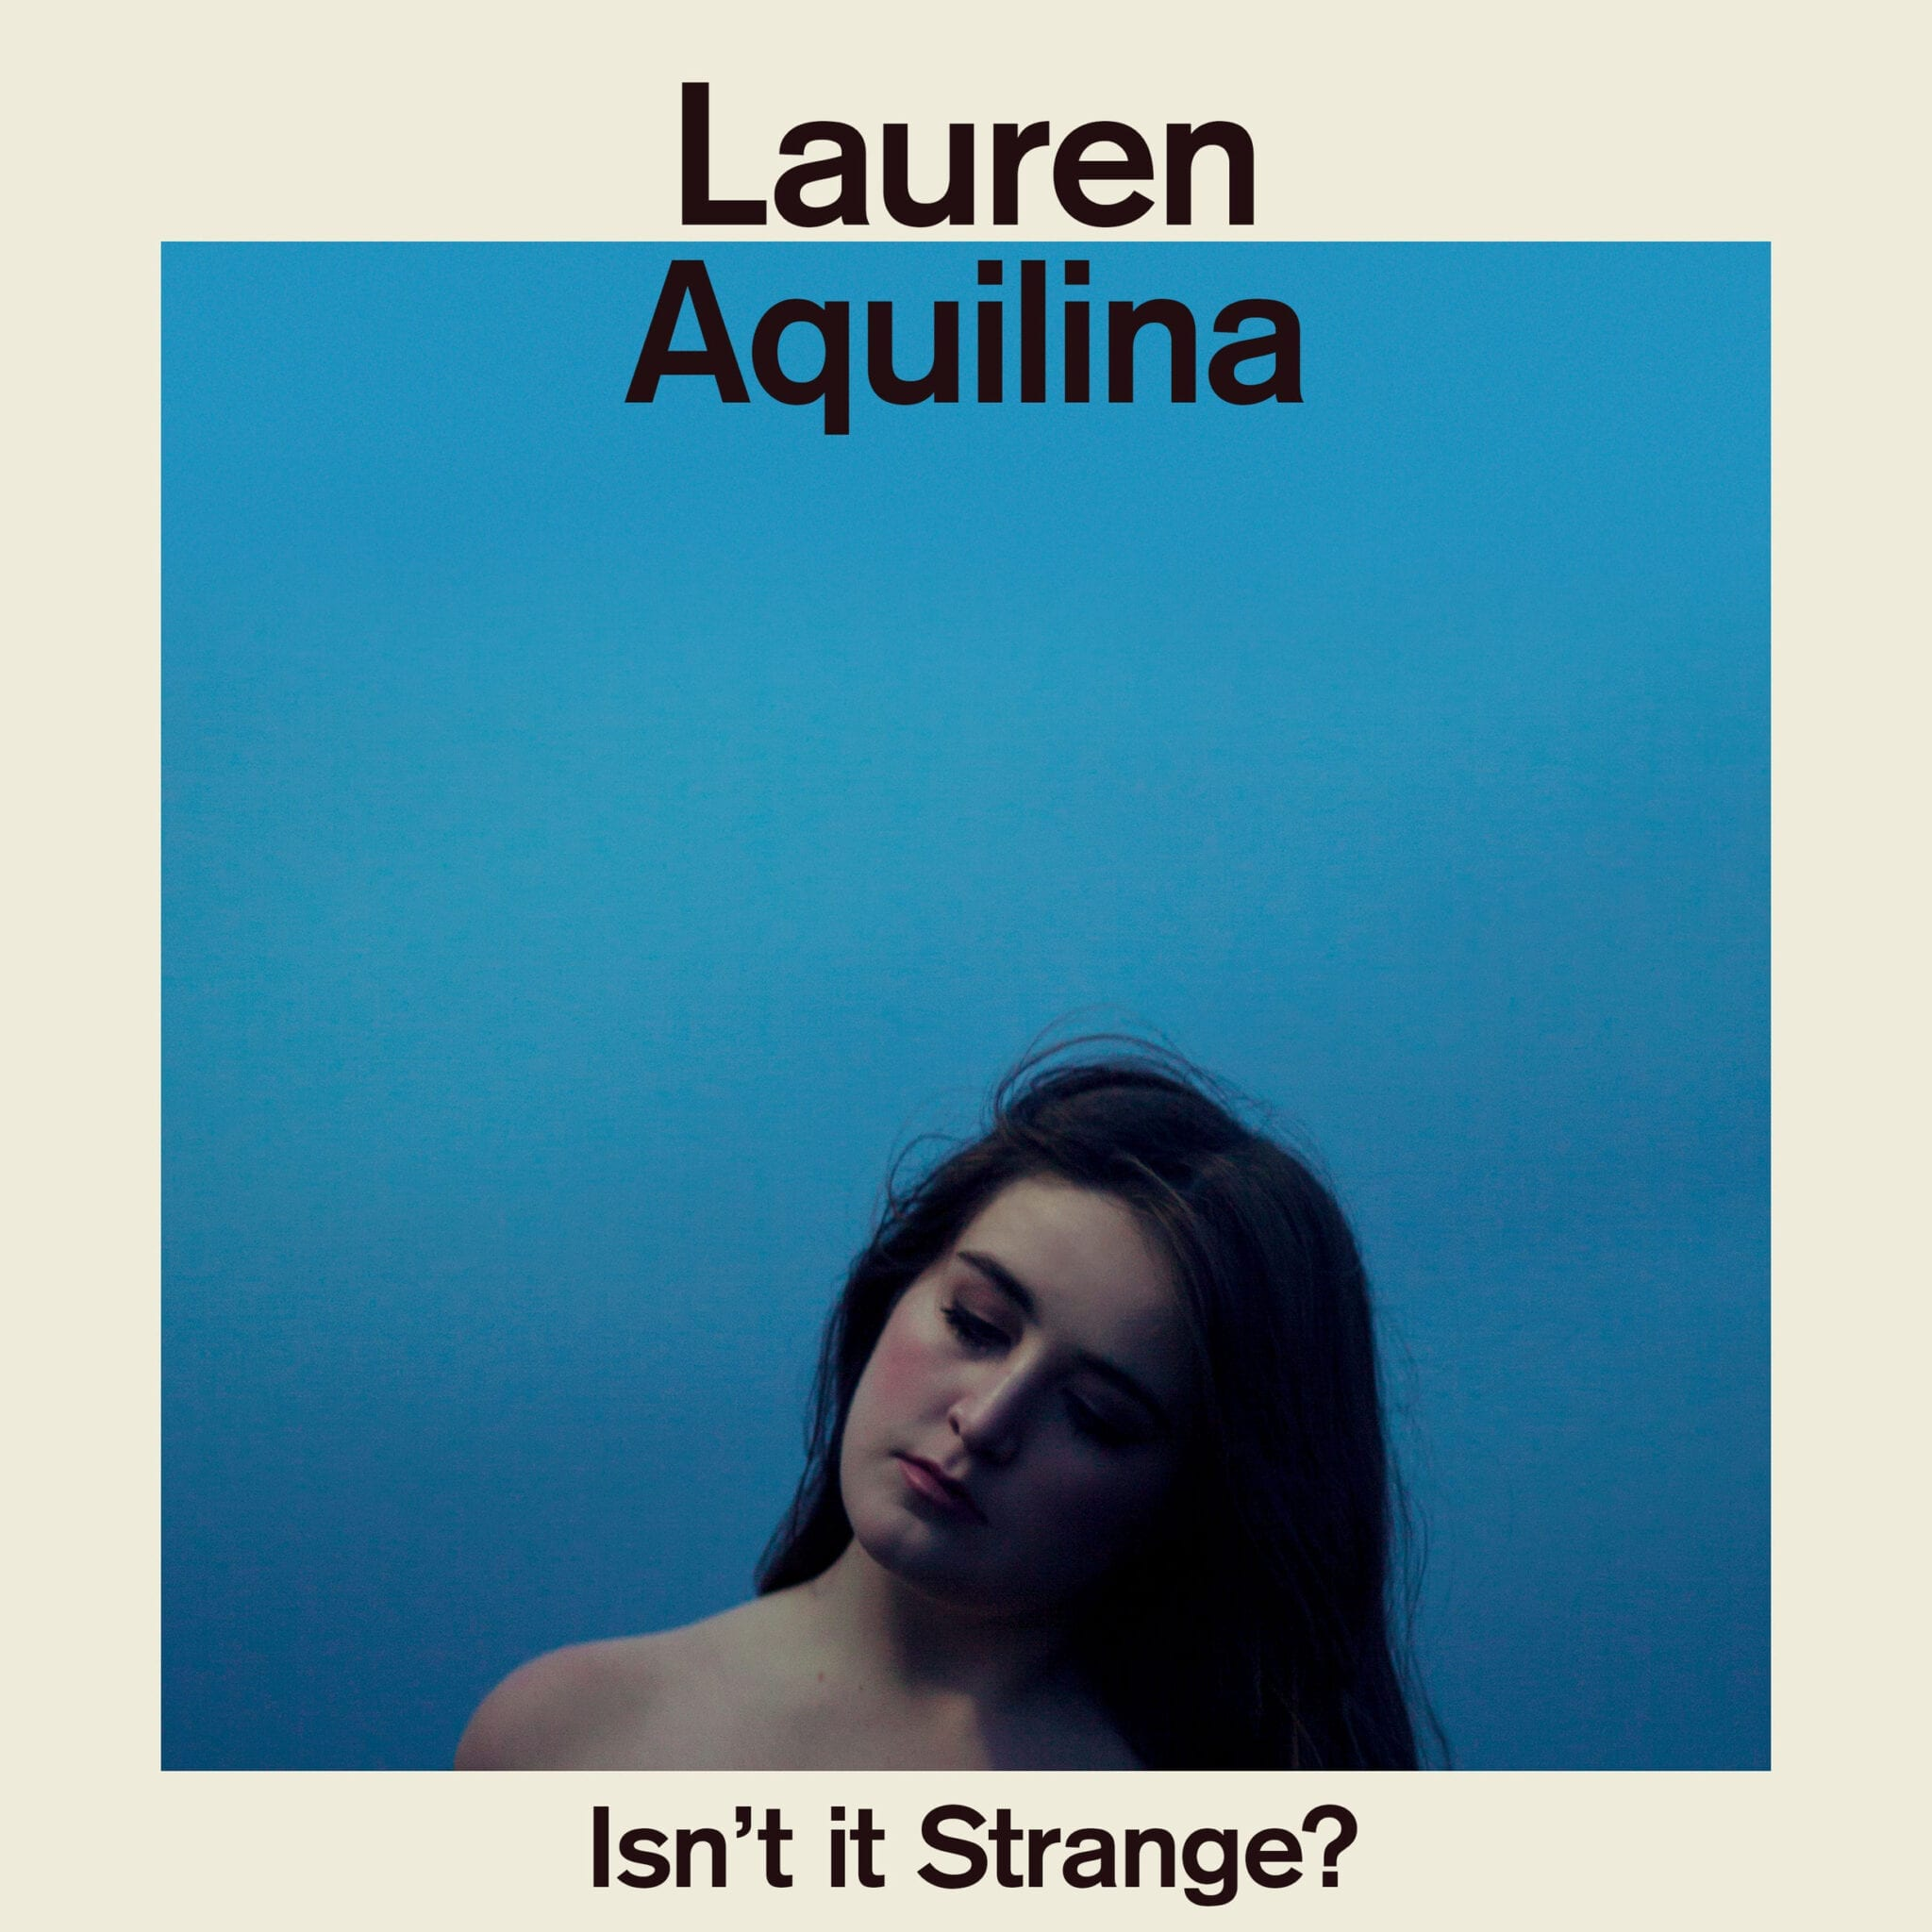 Album Review: Isn't It Strange? // Lauren Aquilina